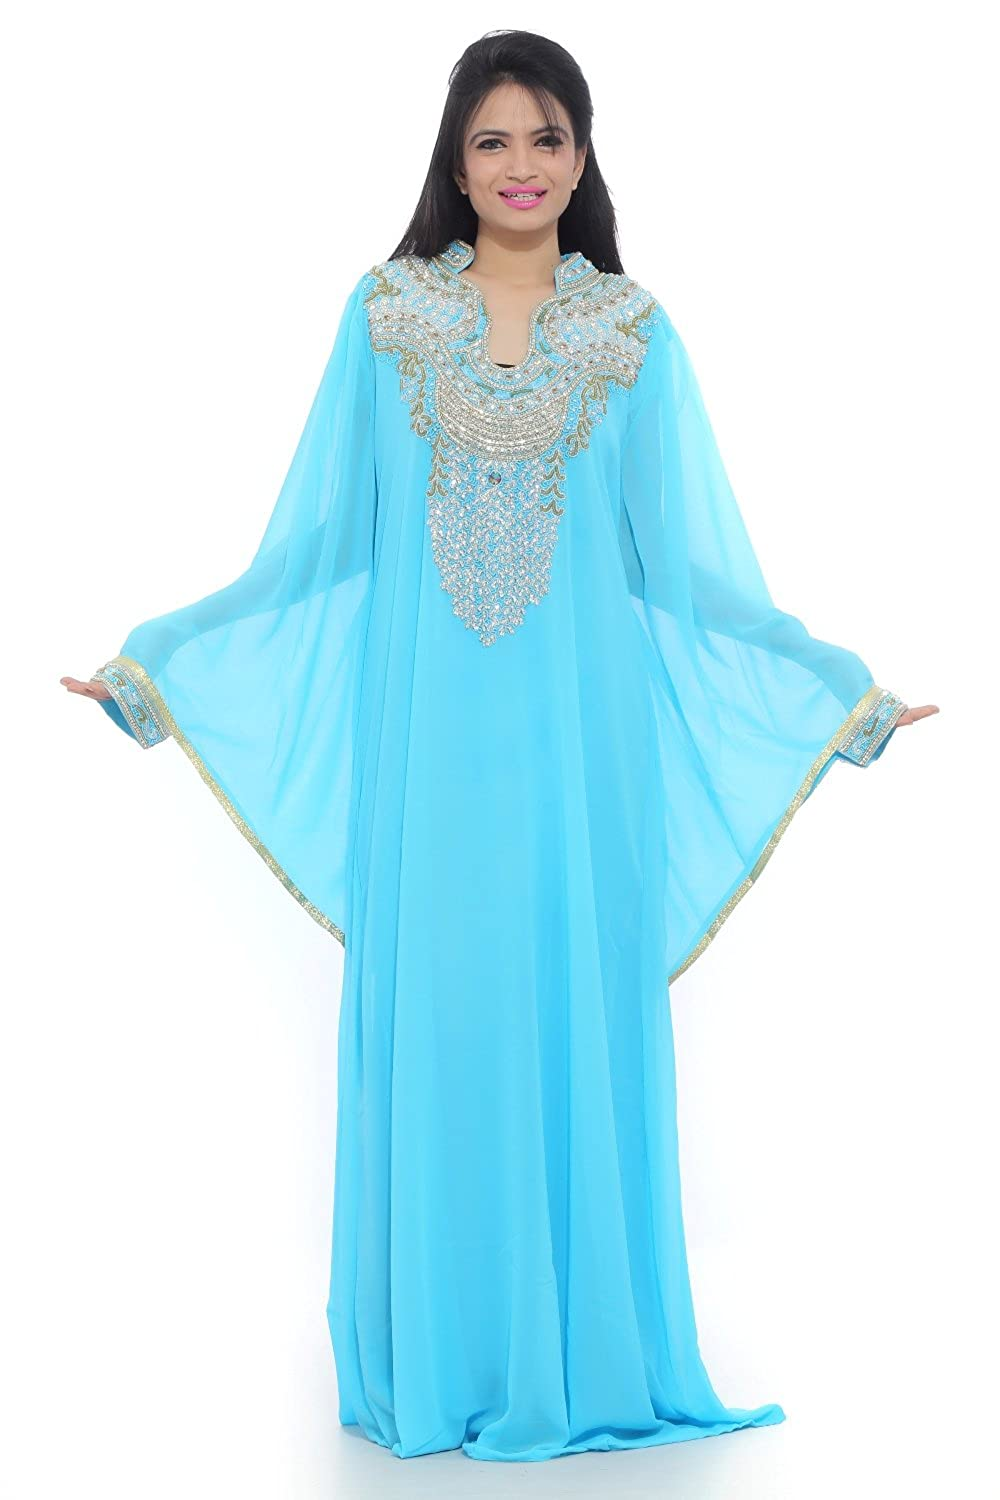 Unique Arabian Nights Theme Party Dress Image Collection - Colorful ...